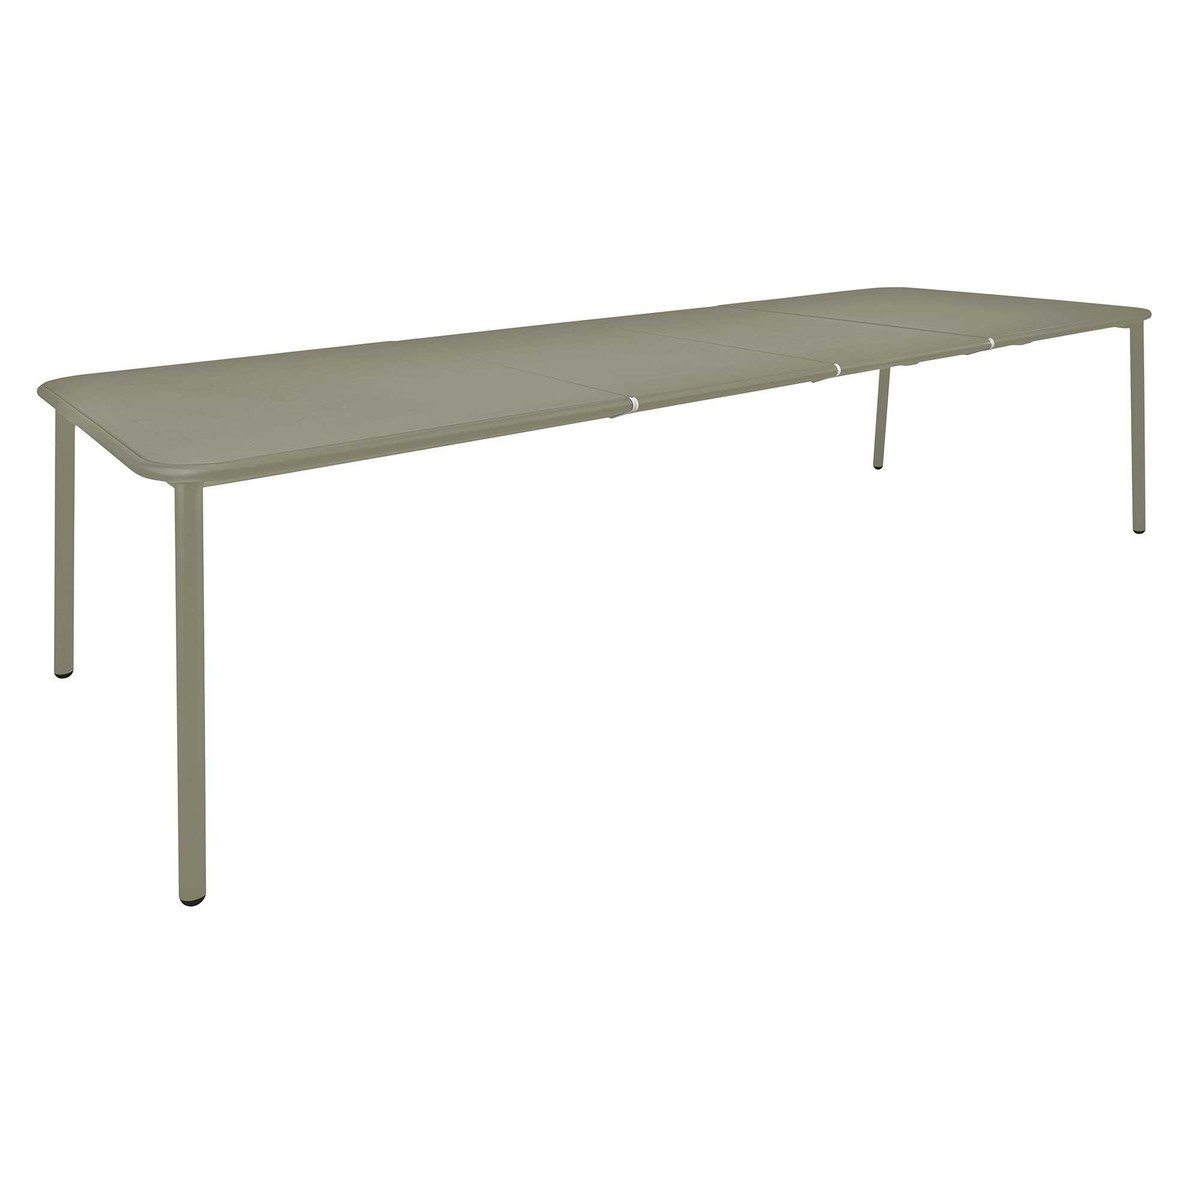 Yard table de jardin extensible de aluminium emu - Table de jardin extensible aluminium ...